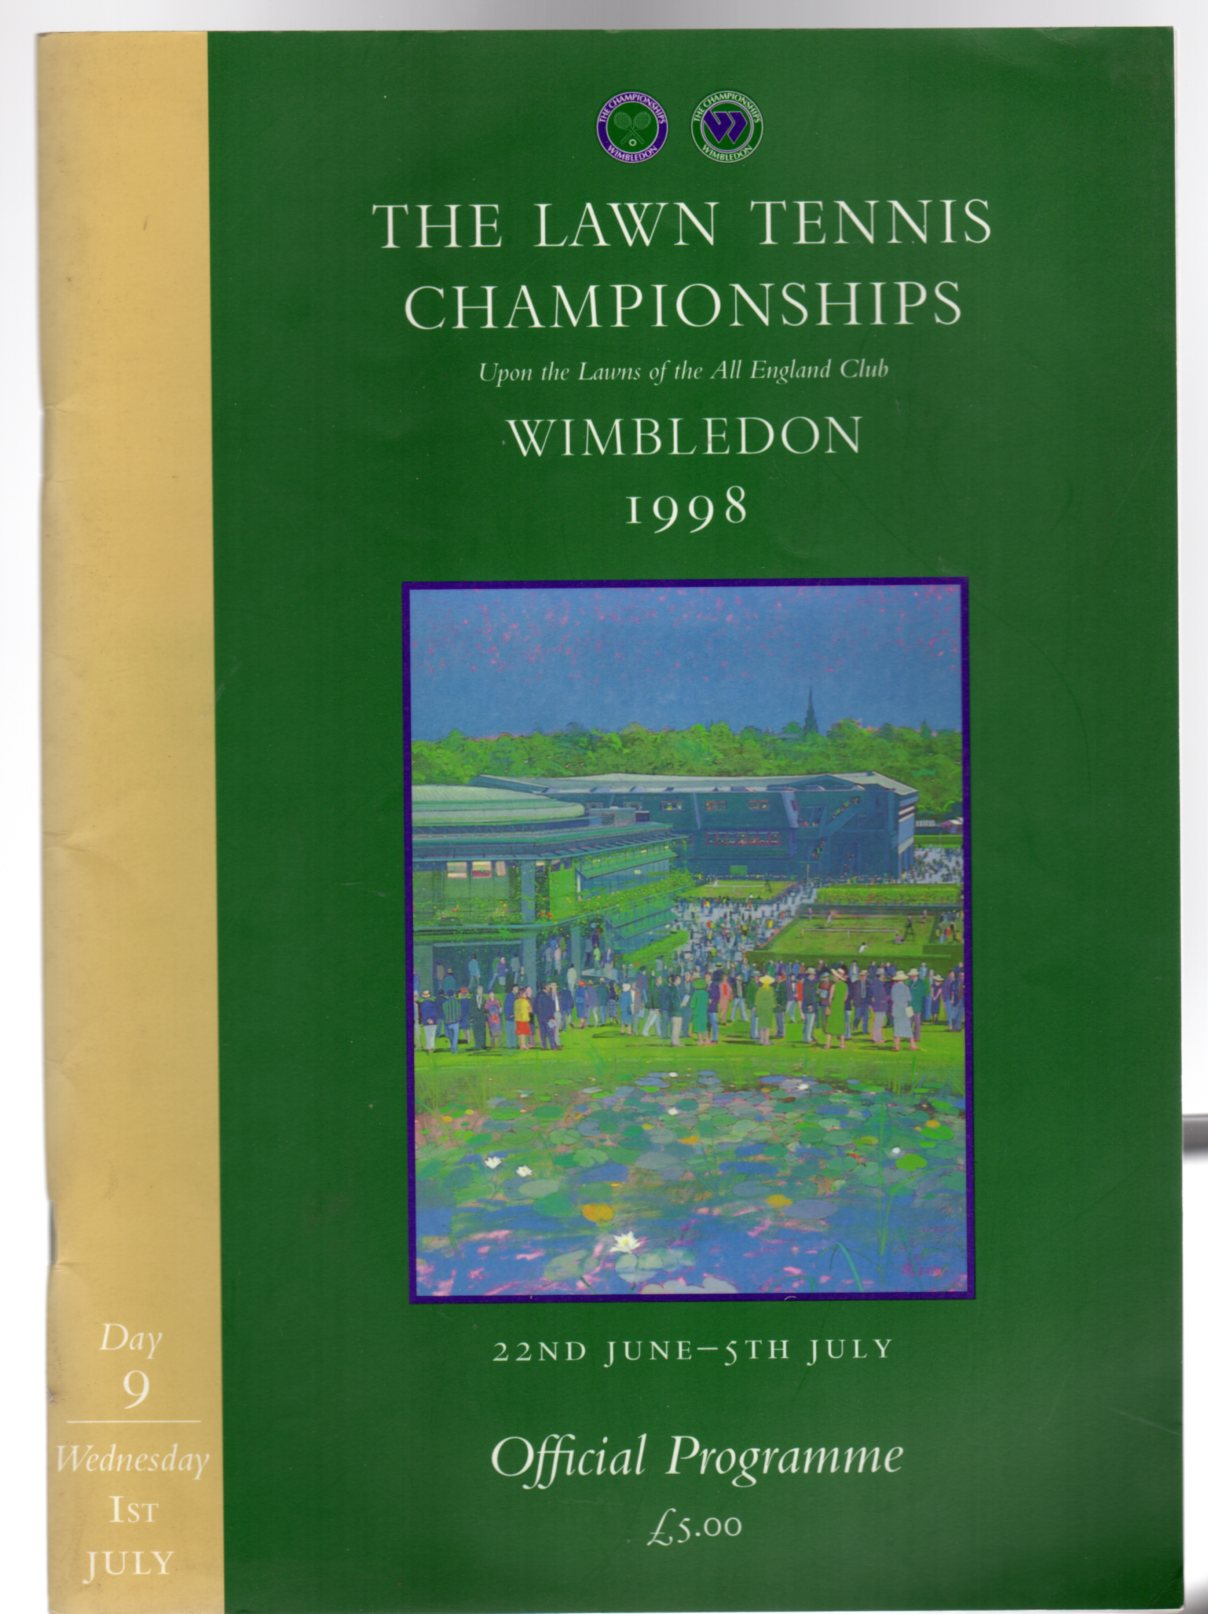 Image for Wimbledon  Official Souvenir Programme 1998 Day 9 Wednesday 1st July